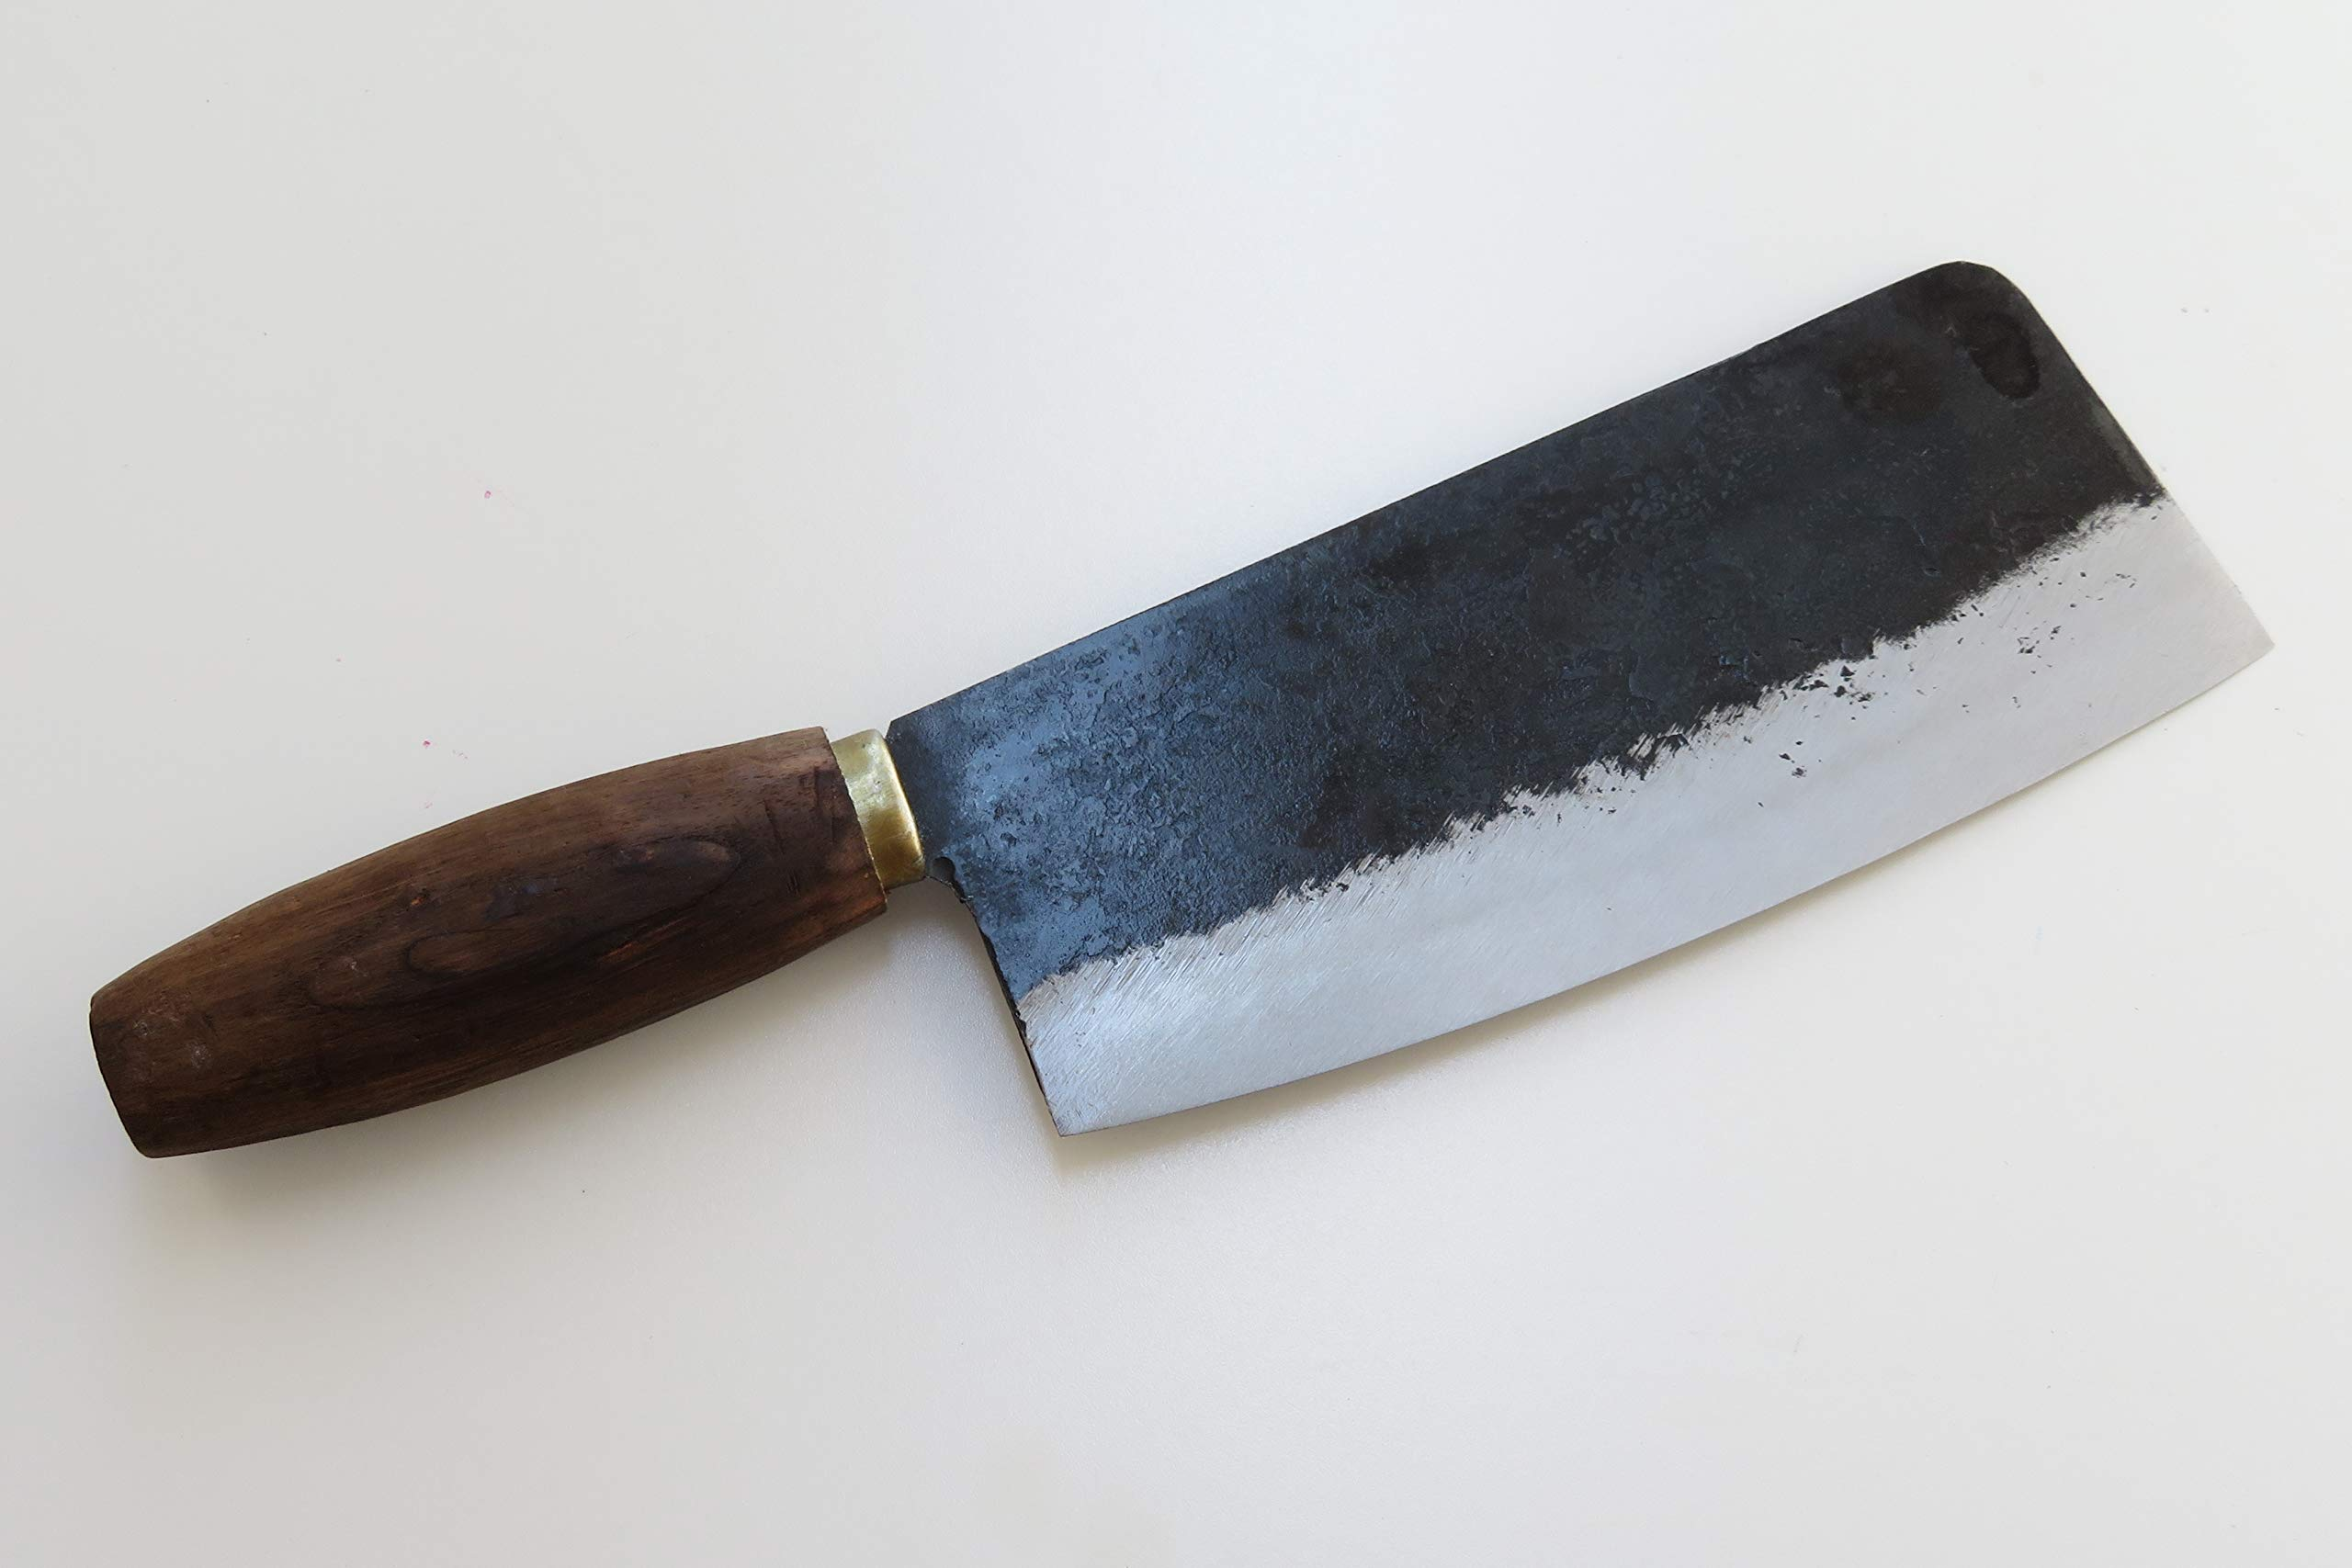 Crude - Premium Chinese Cleaver Vegetable Chef Knife, 8 inch Narrow Carbon Steel